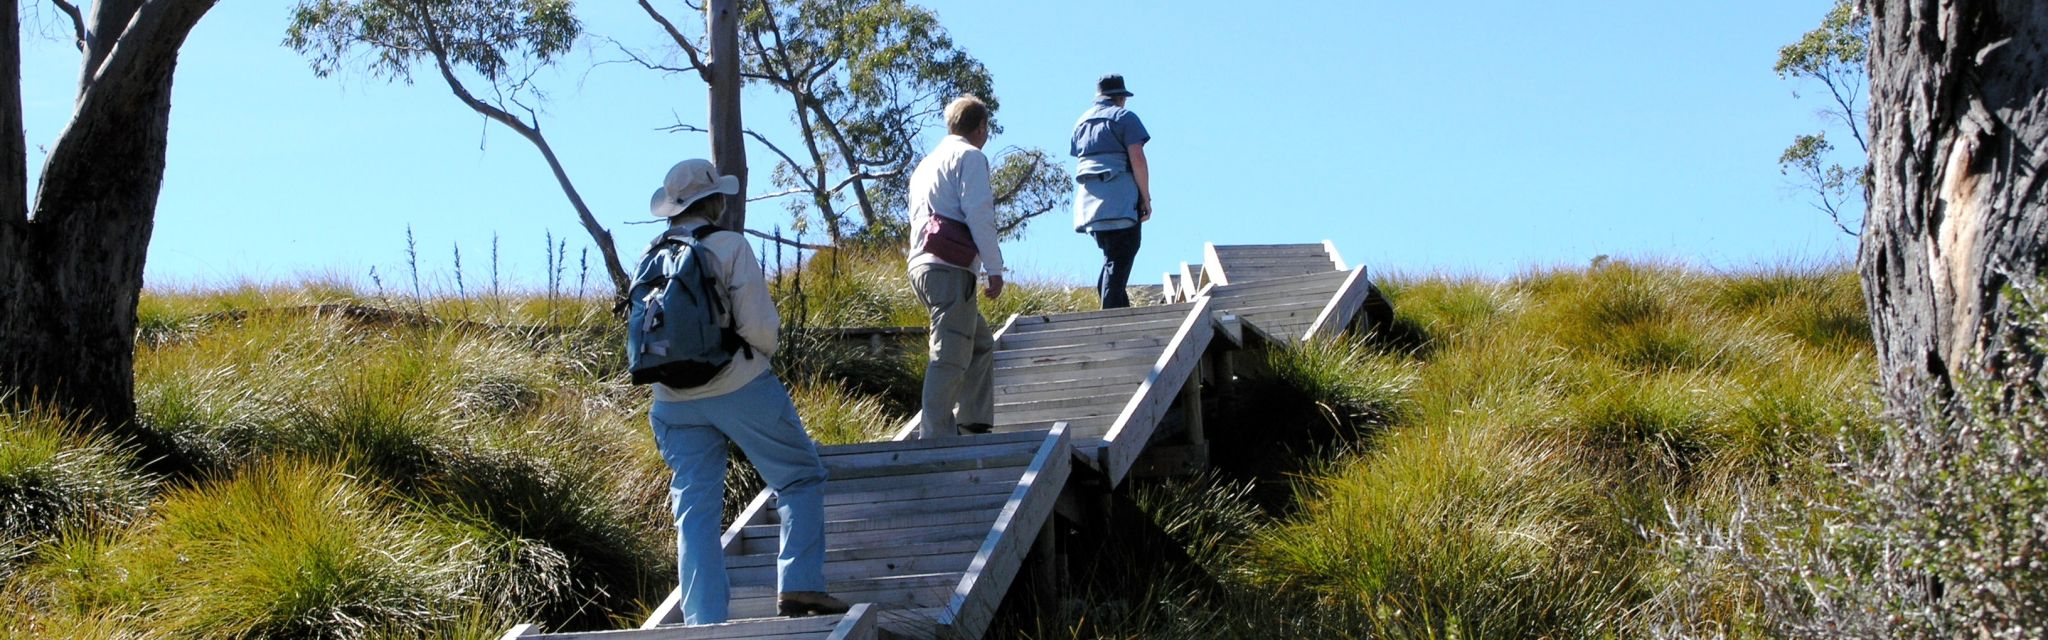 Board walk steps make for easy climbing on Guided walking Holidays Australia